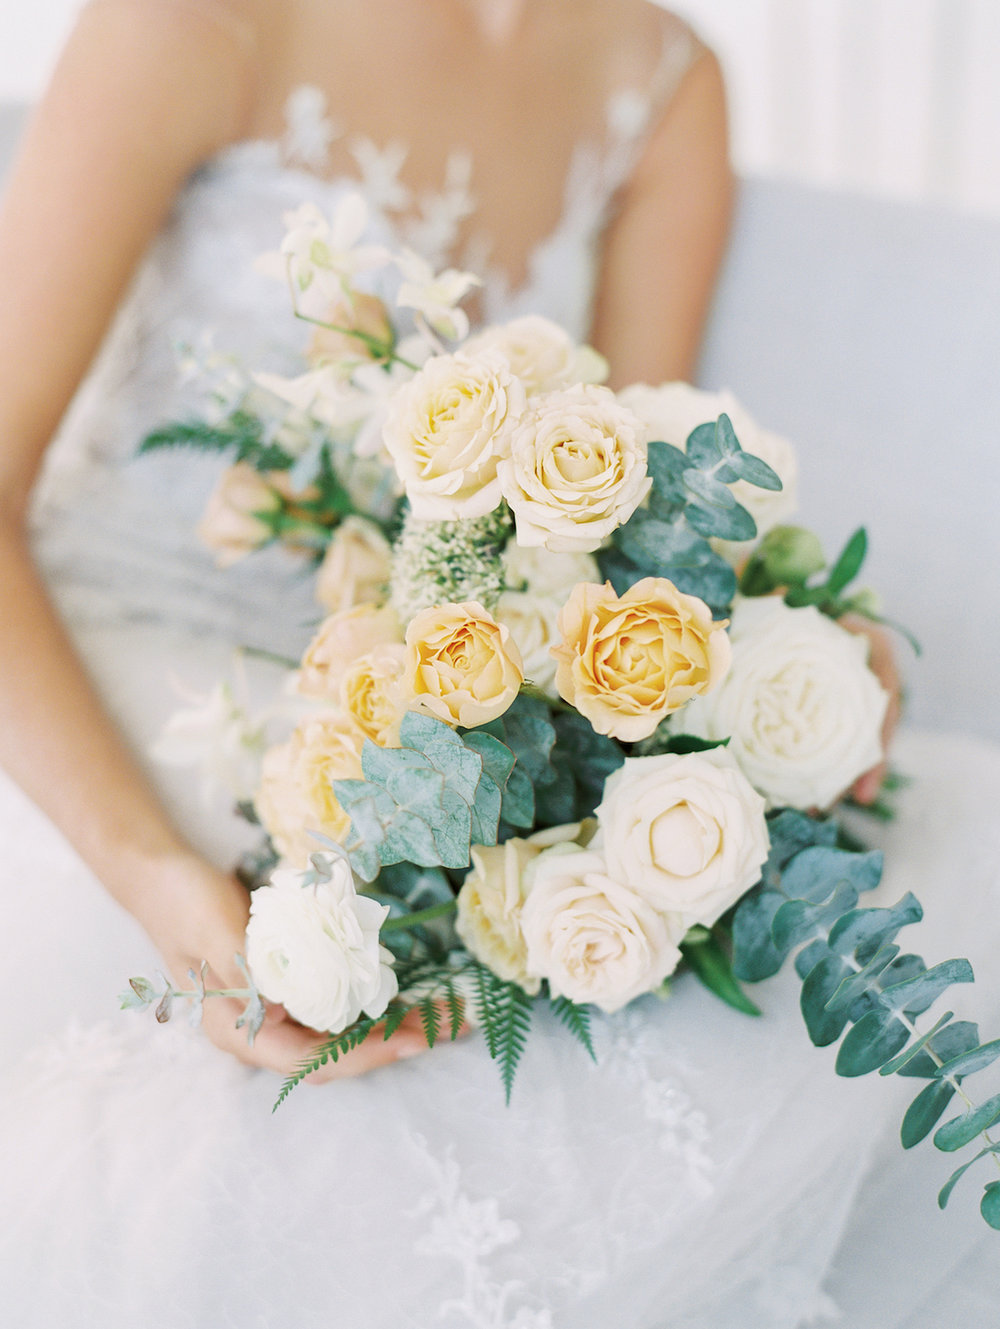 Neutral wedding flowers | Studio 710 | Compass Floral | Wedding Florist in San Diego and Southern California | Dear Lovers Photography